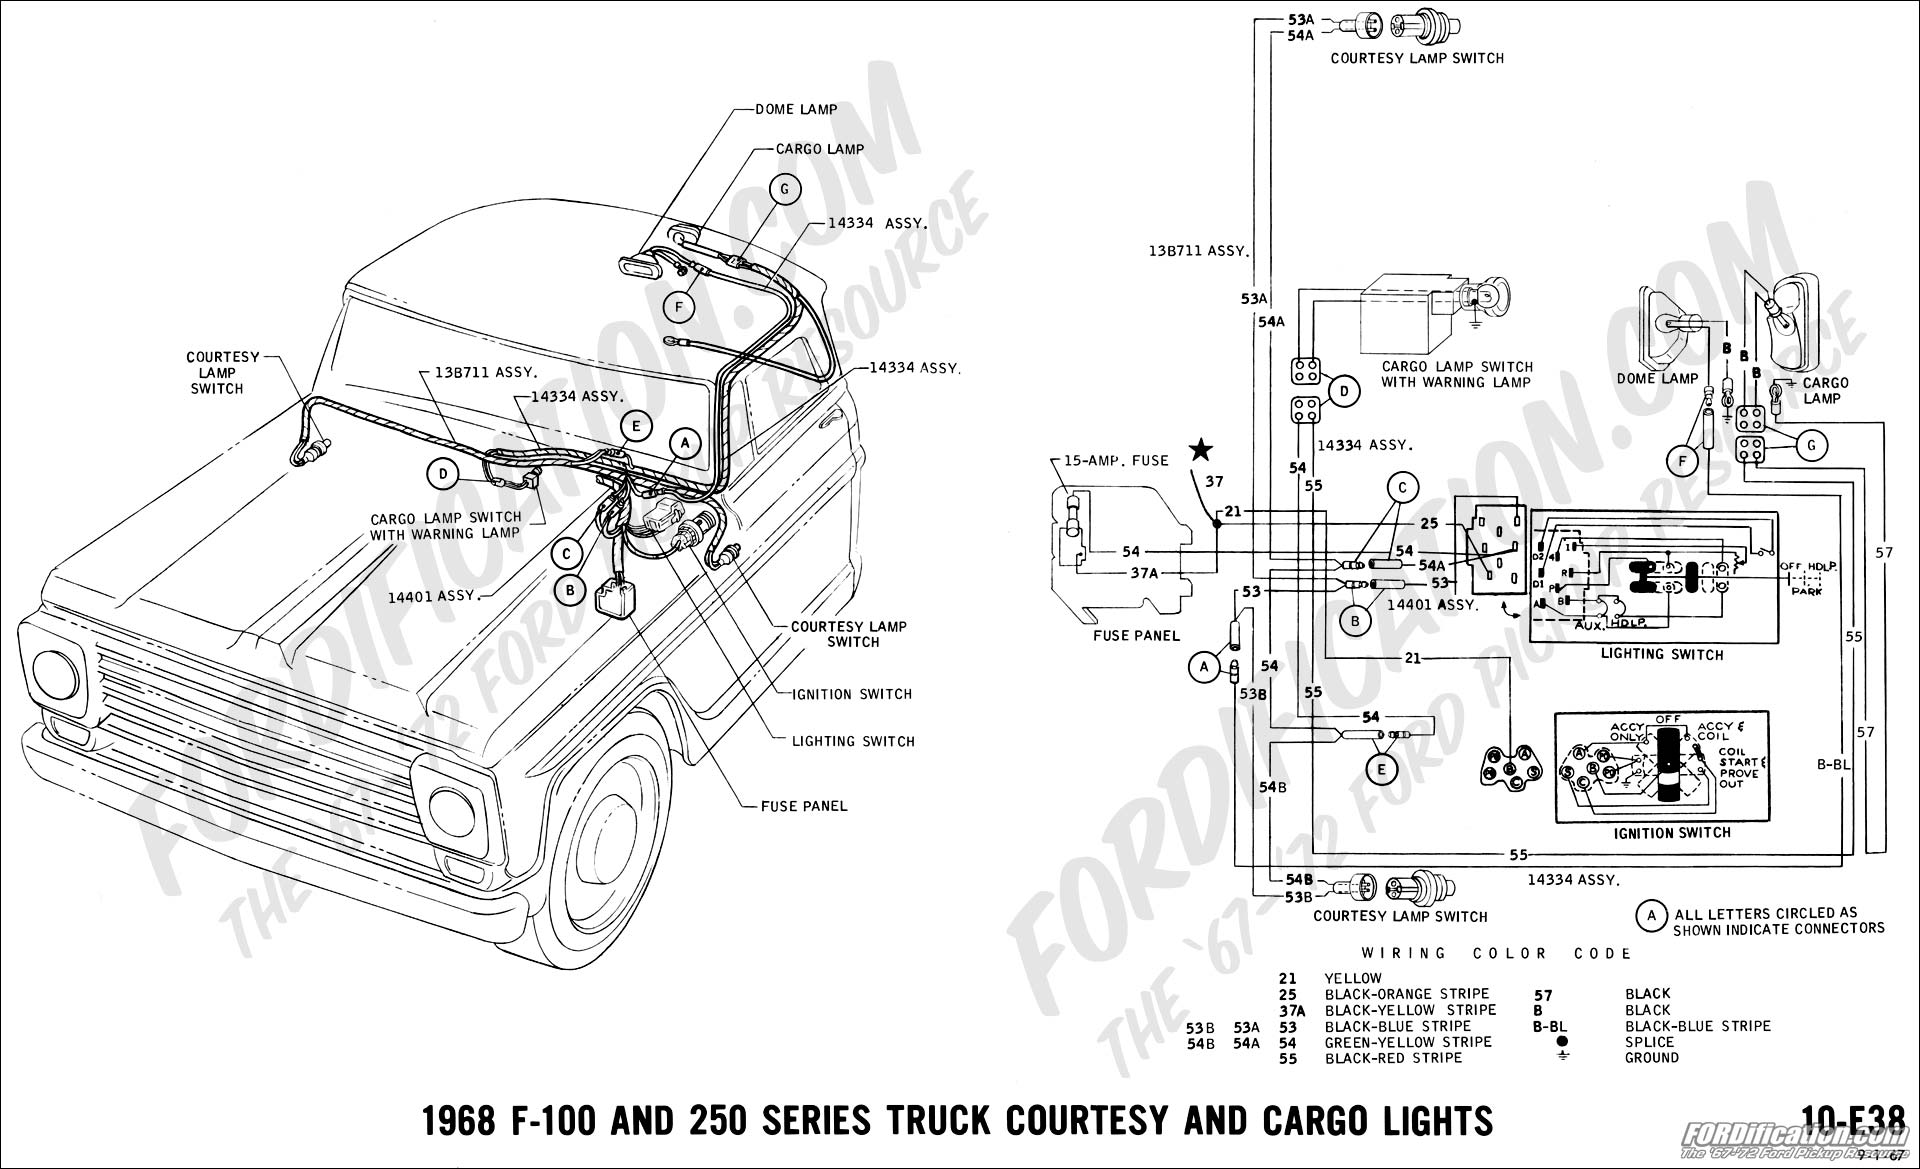 68 40 ford truck technical drawings and schematics section h wiring 1971 ford f250 wiring diagram at mifinder.co